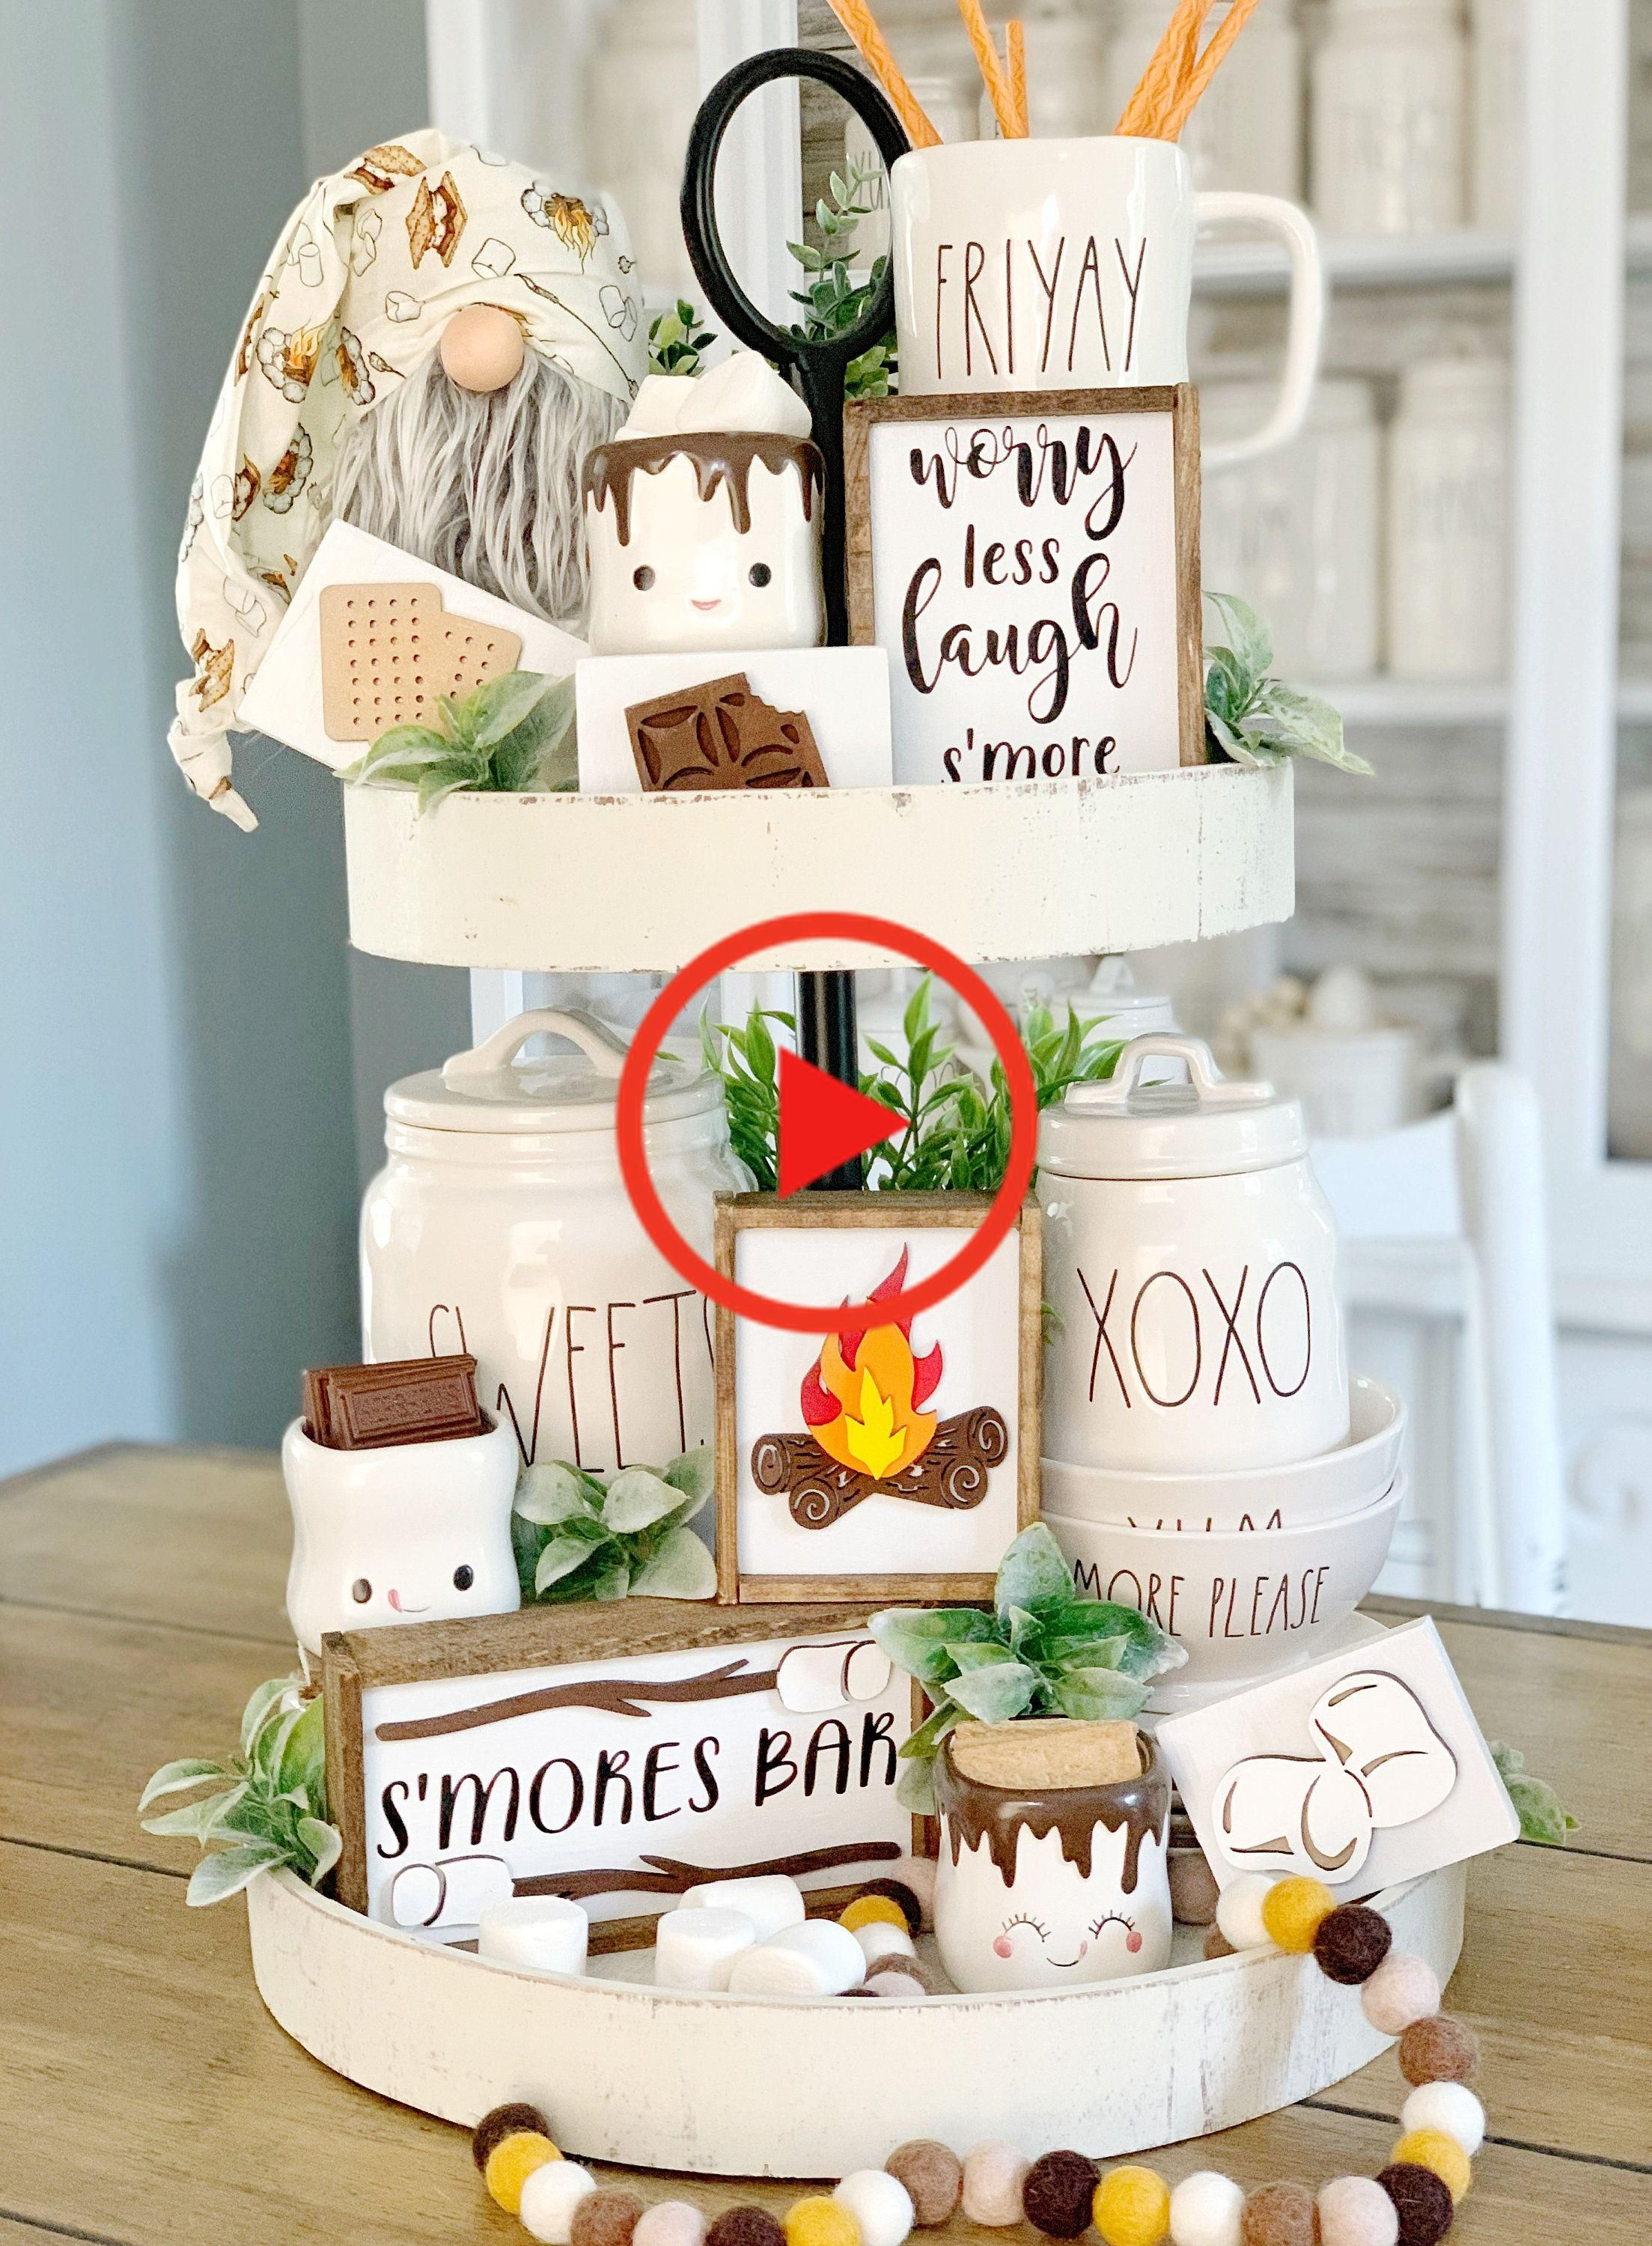 S'mores sign / campfire signs / 3D signs / s'mores bar / tiered tray signs / rae Dunn decor #homedecor